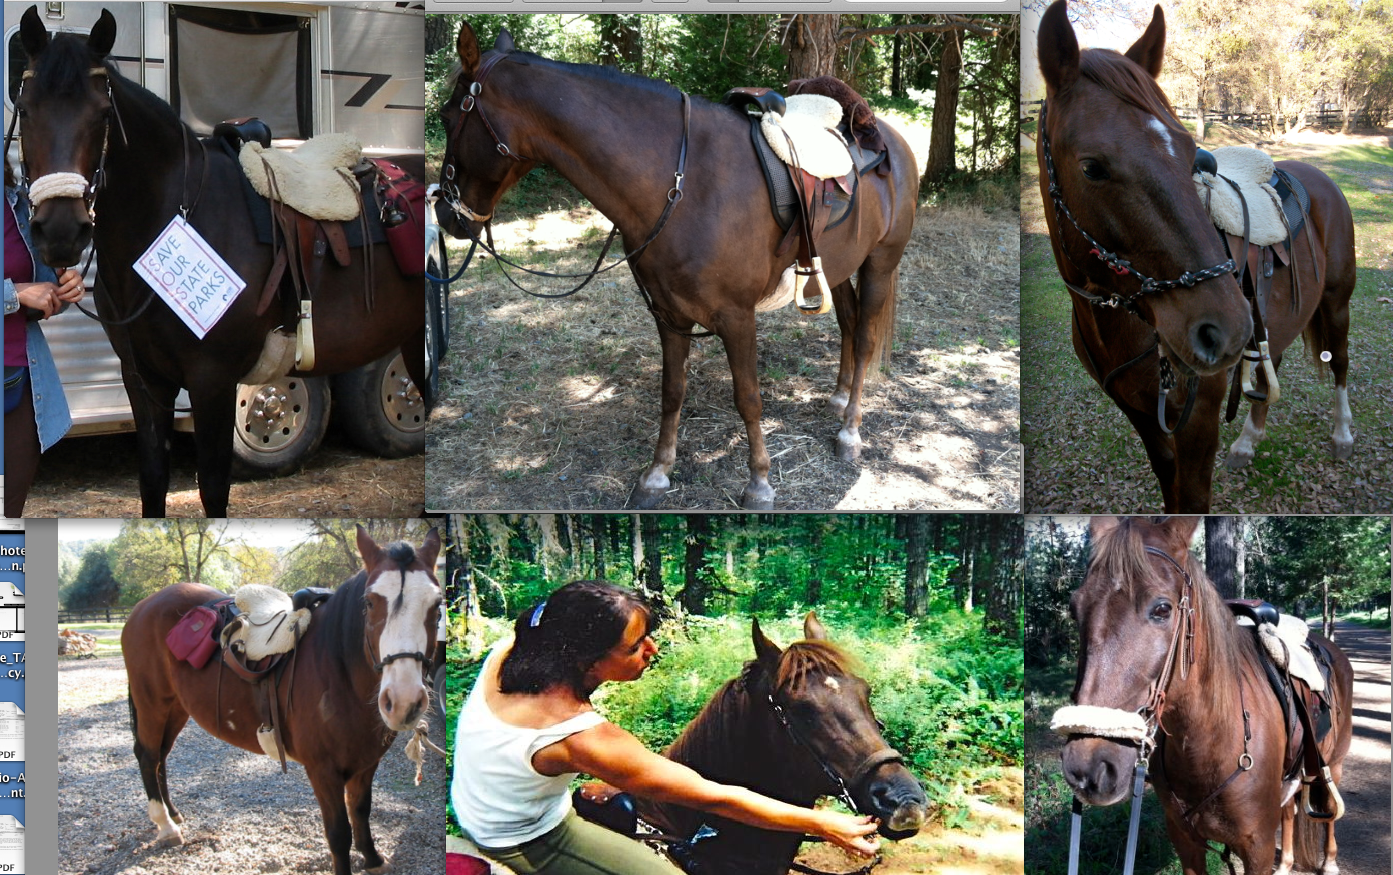 The top row (left to right) Gwen, Finn, Rojo. Bottom row: Remi,  Me with Aladdin, BG. All of them in my old Boz saddle.